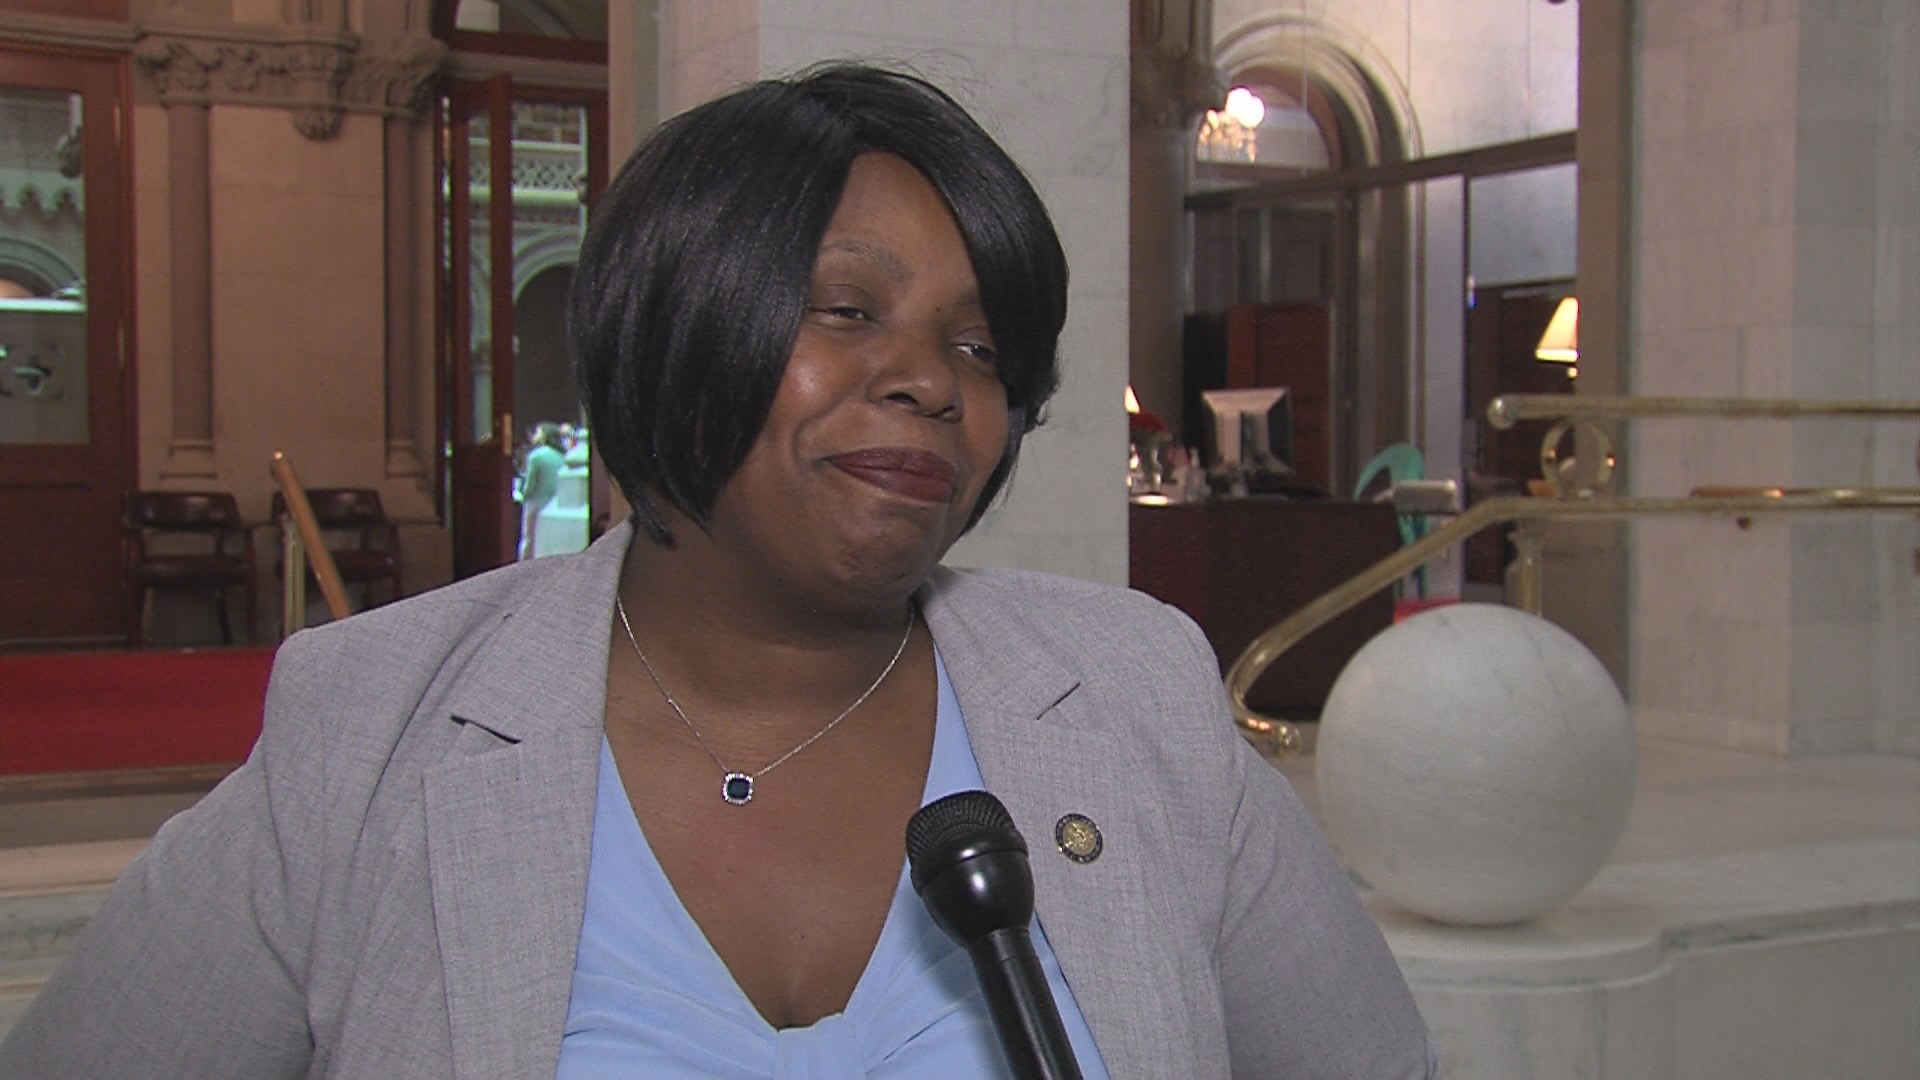 Assemblywoman Walker on Voting Rights